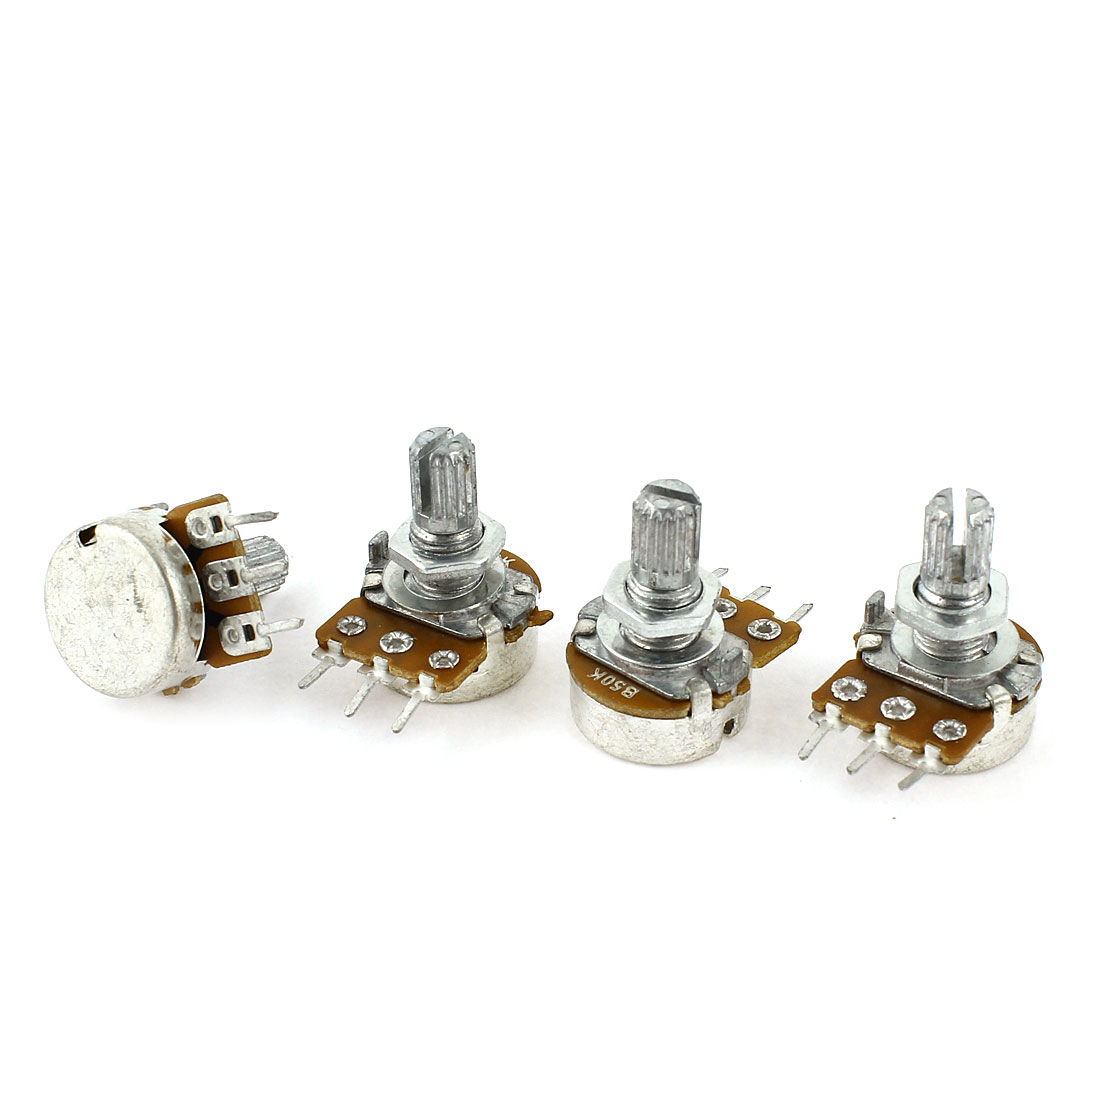 4 Pcs Single Linear Knurled Shaft Control Volume Potentiometers 50K Ohm WH148